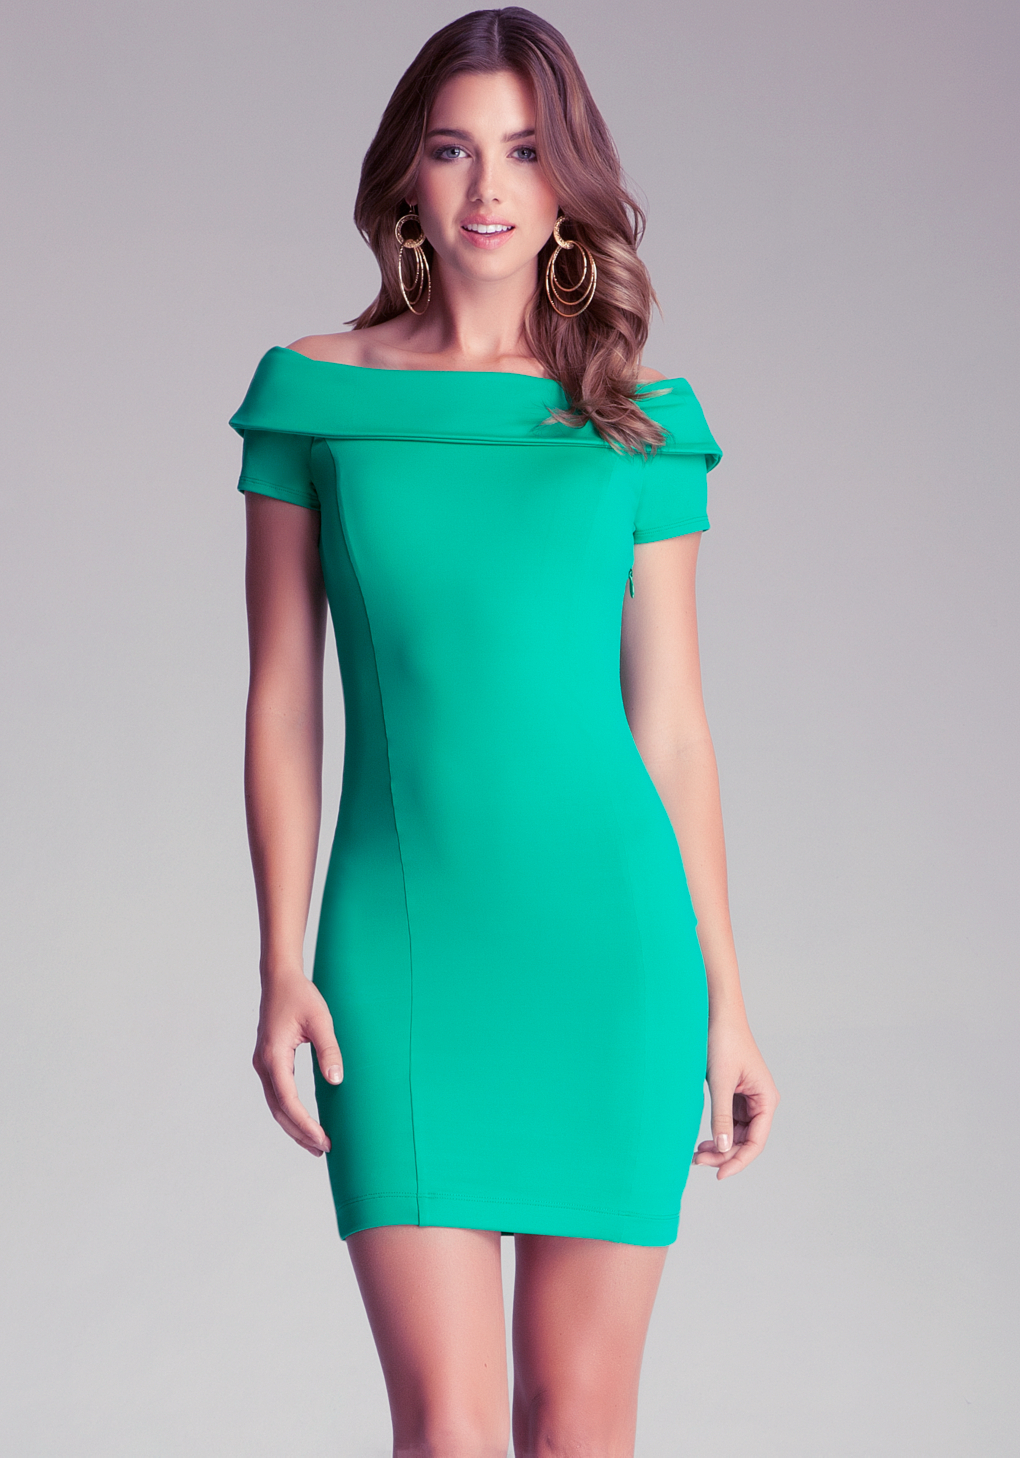 Lyst - Bebe Off Shoulder Bodycon Dress in Green